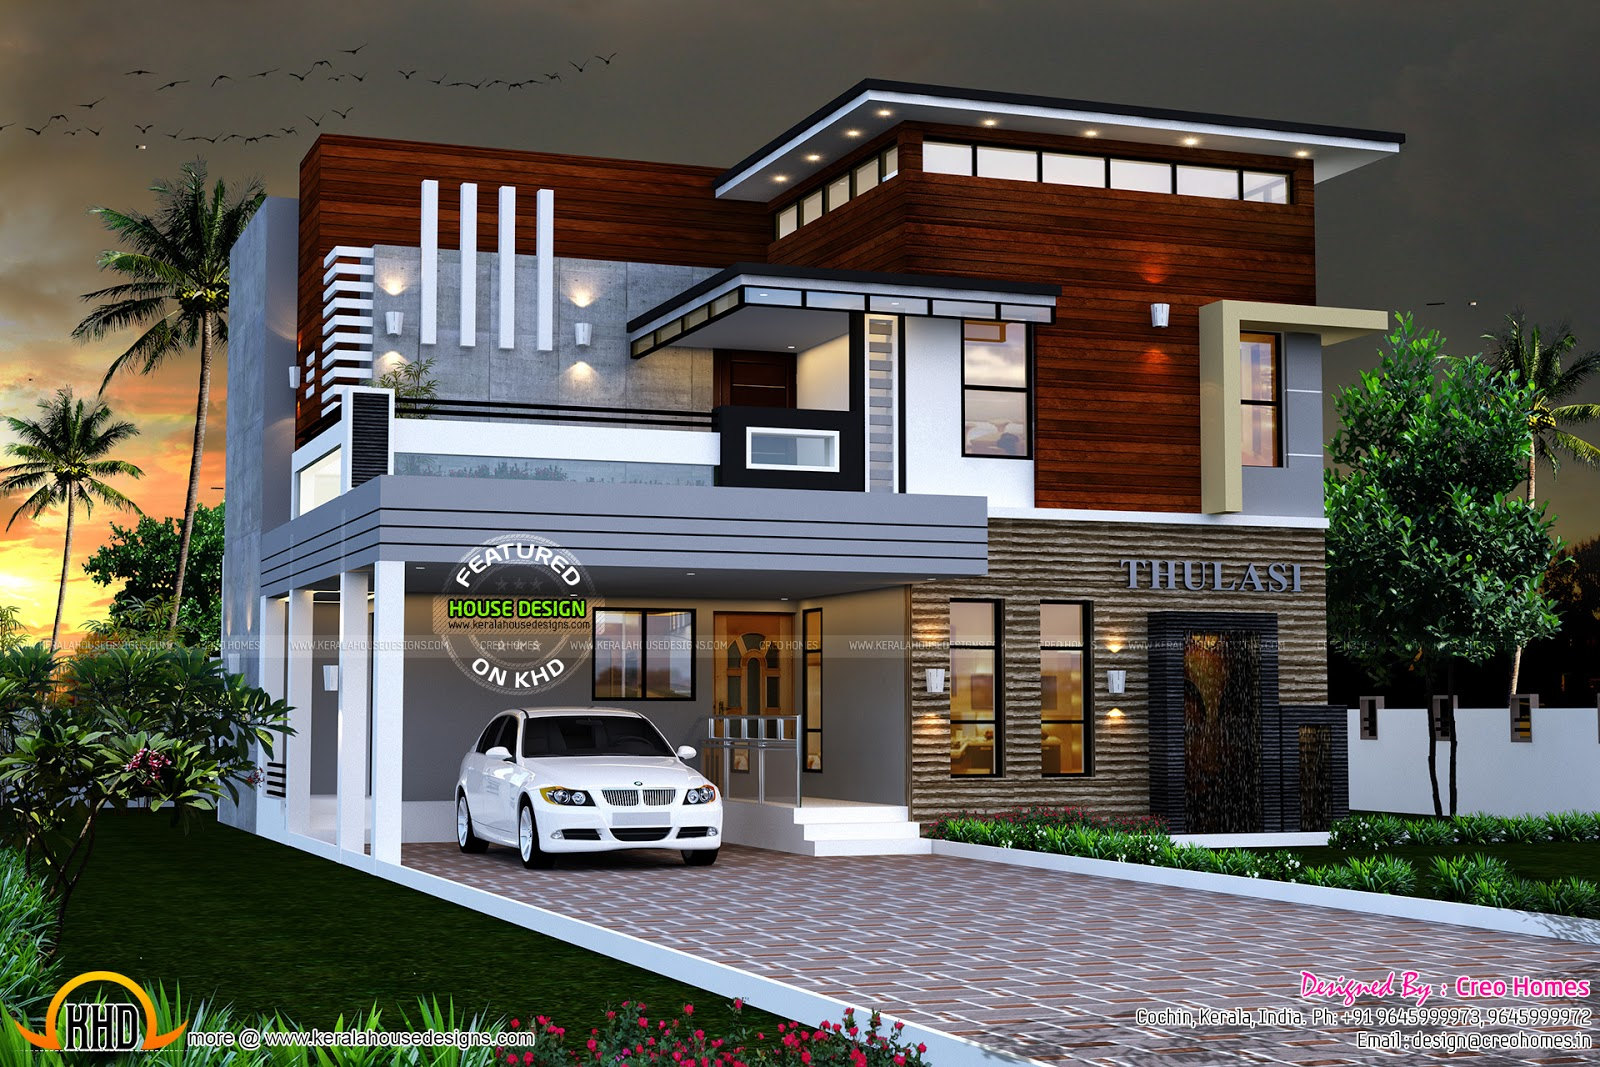 All about design sq ft modern contemporary house kerala home design and floor plans Home interior design ideas in chennai